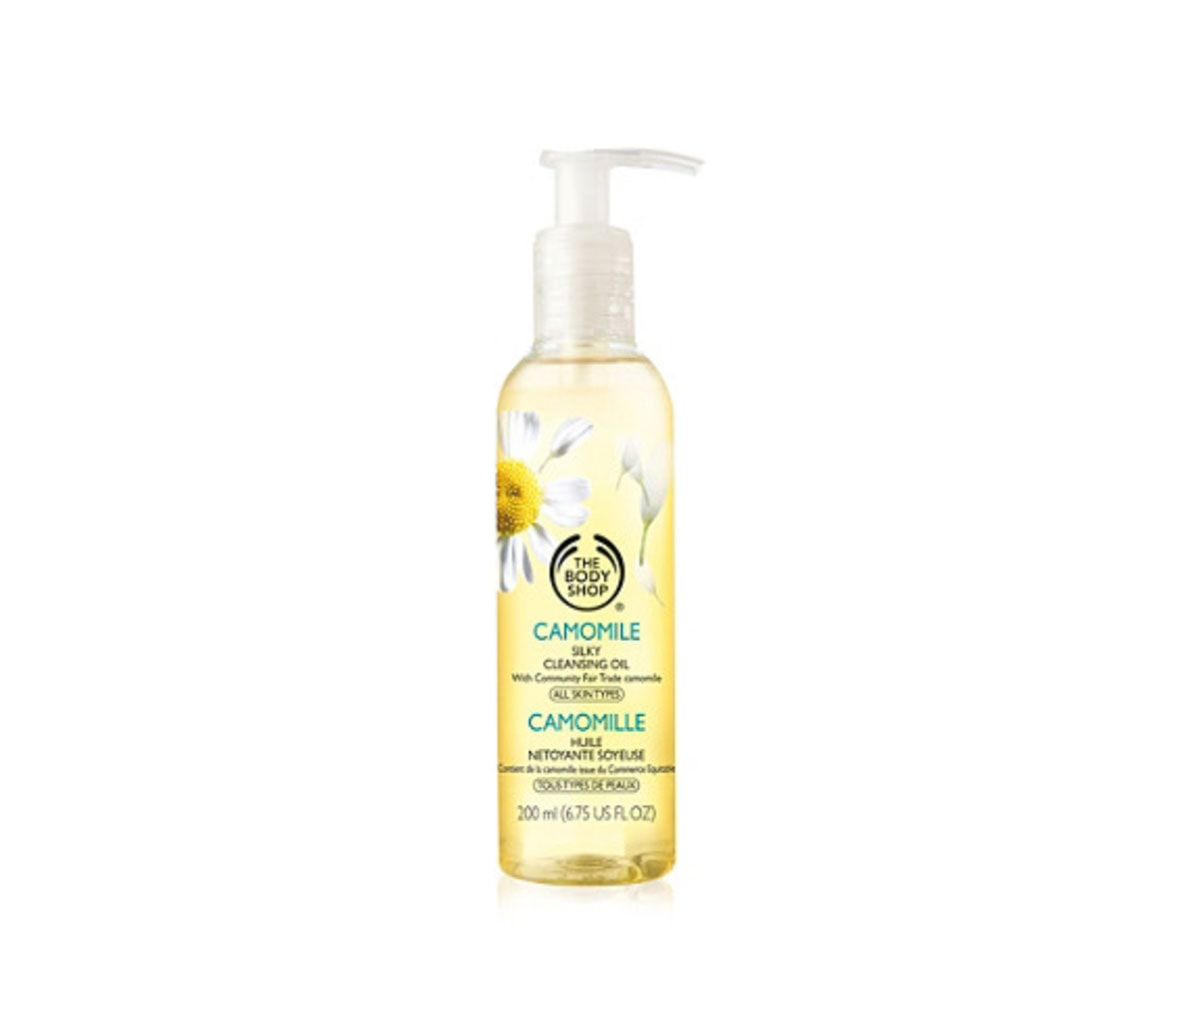 Best makeup remover for dry skin: The Body Shop cleansing oil